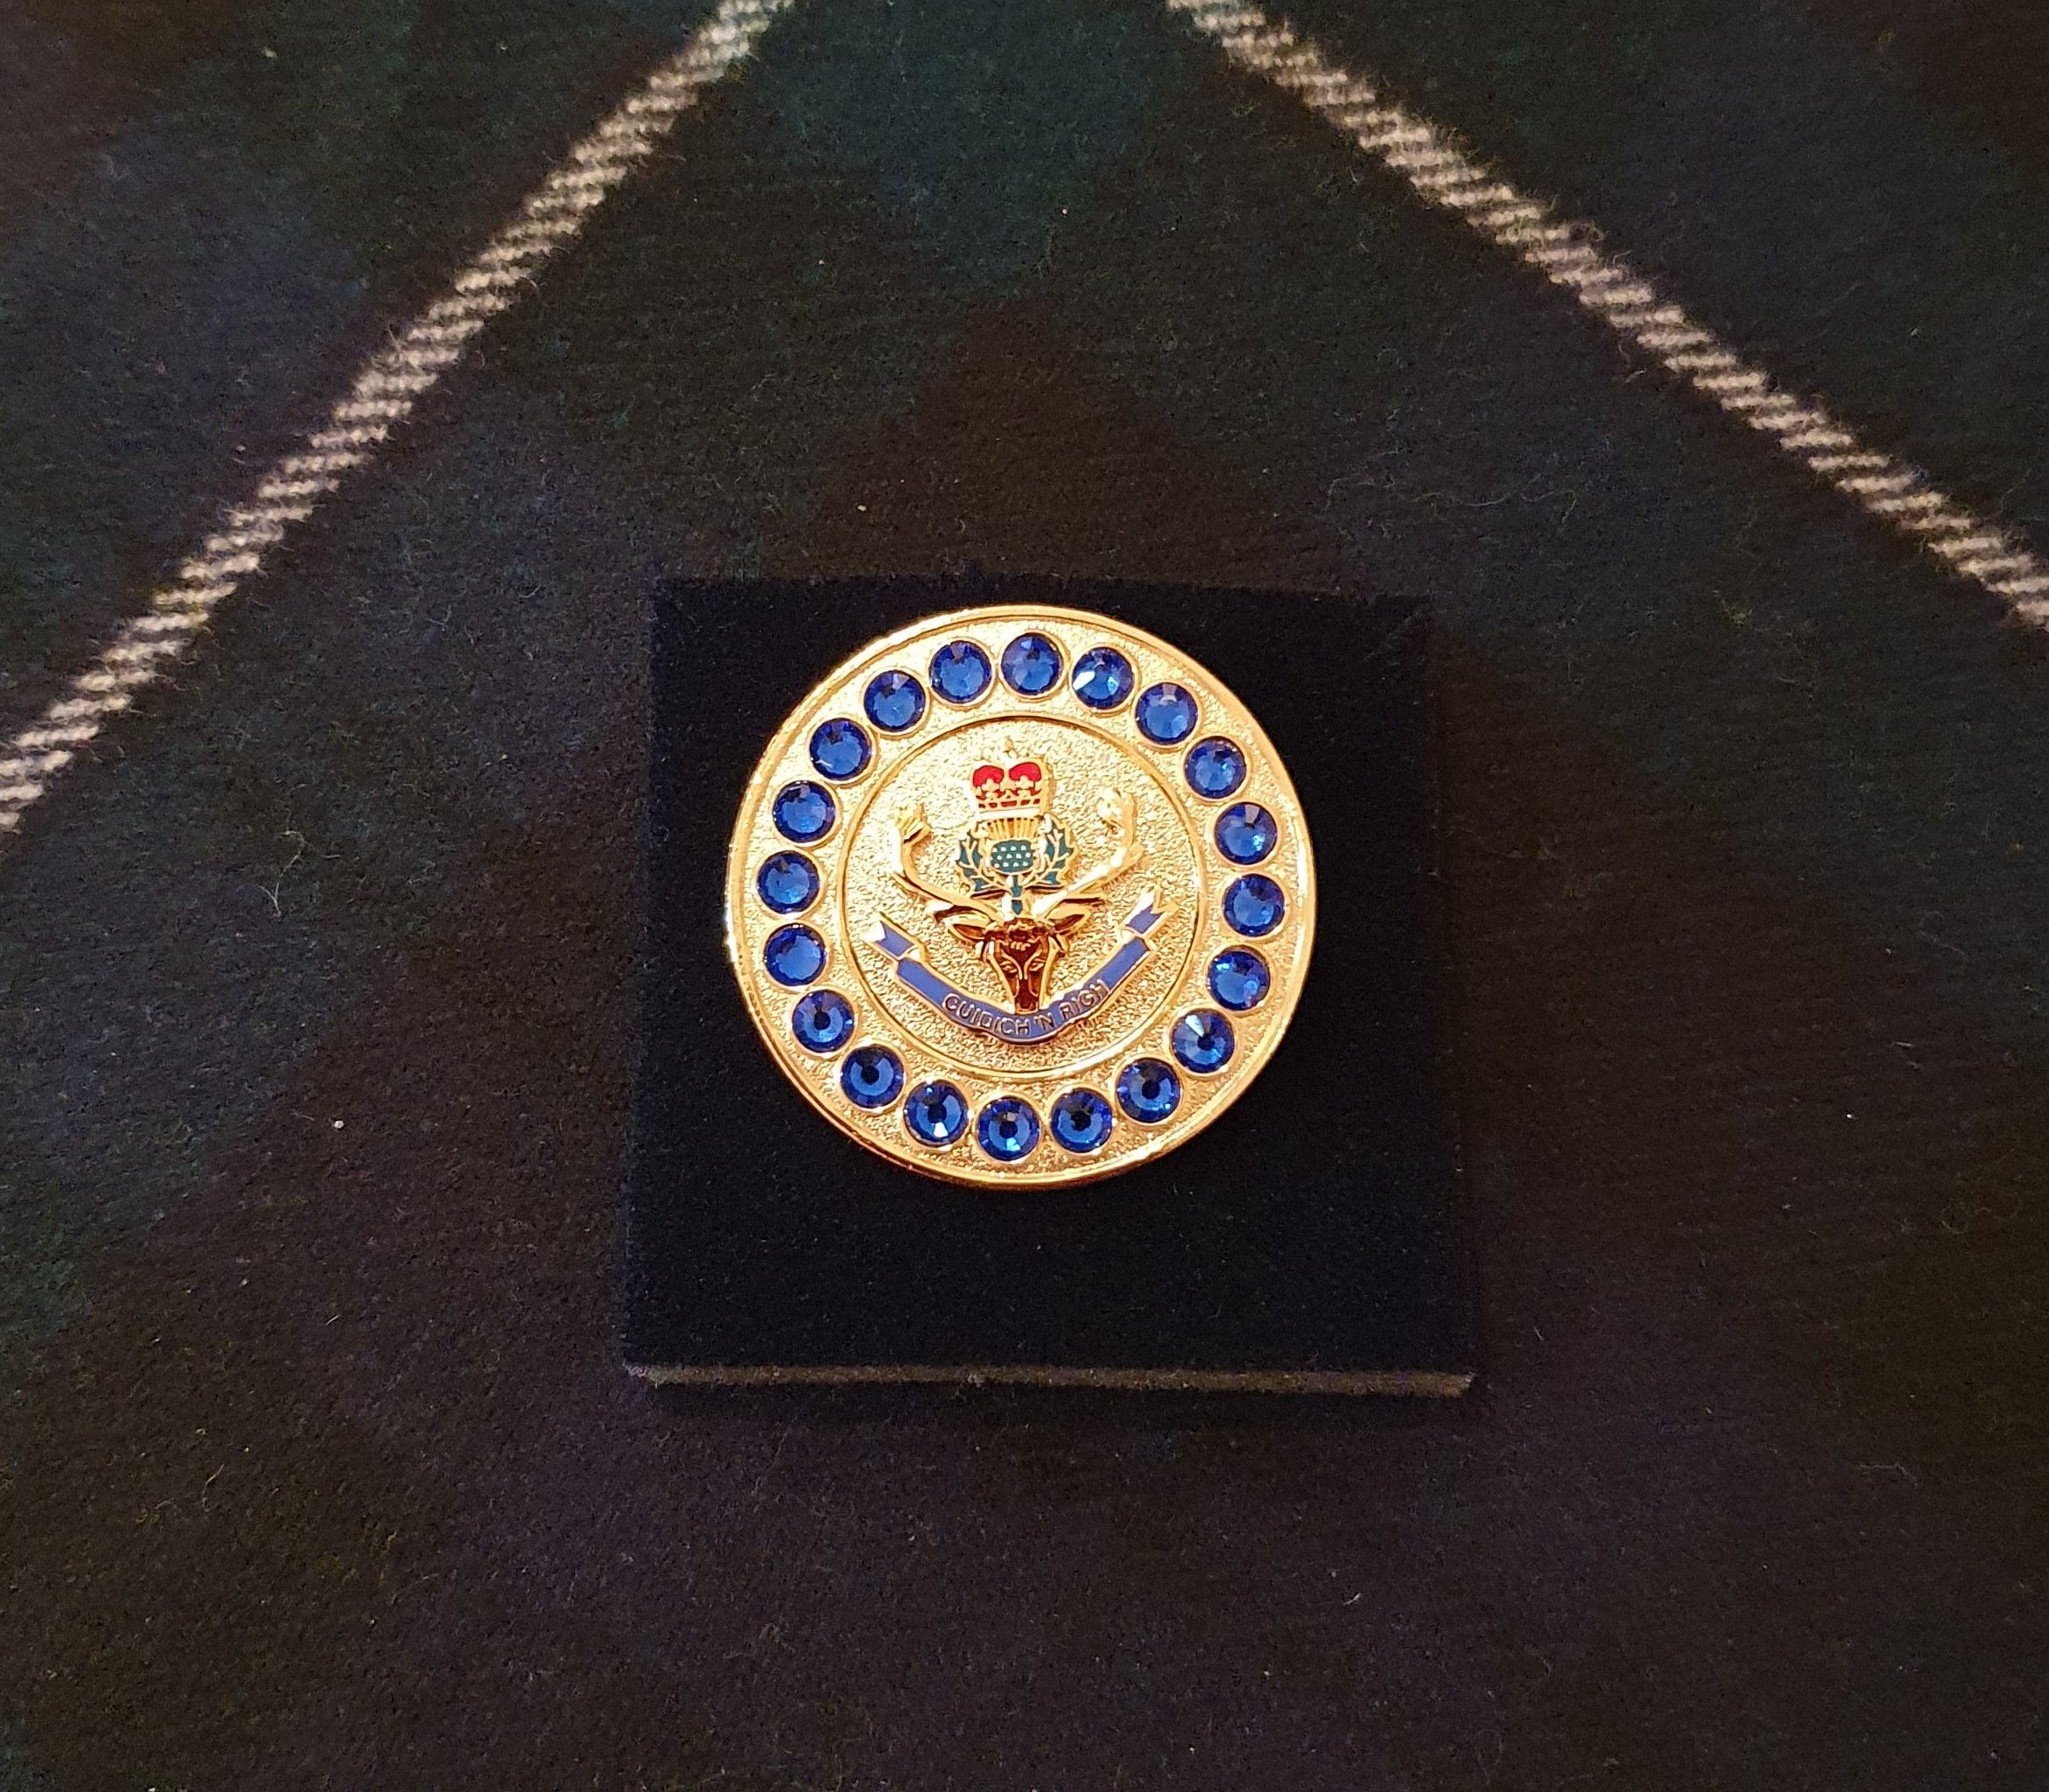 Queen's Own Highlanders Regimental Brooch